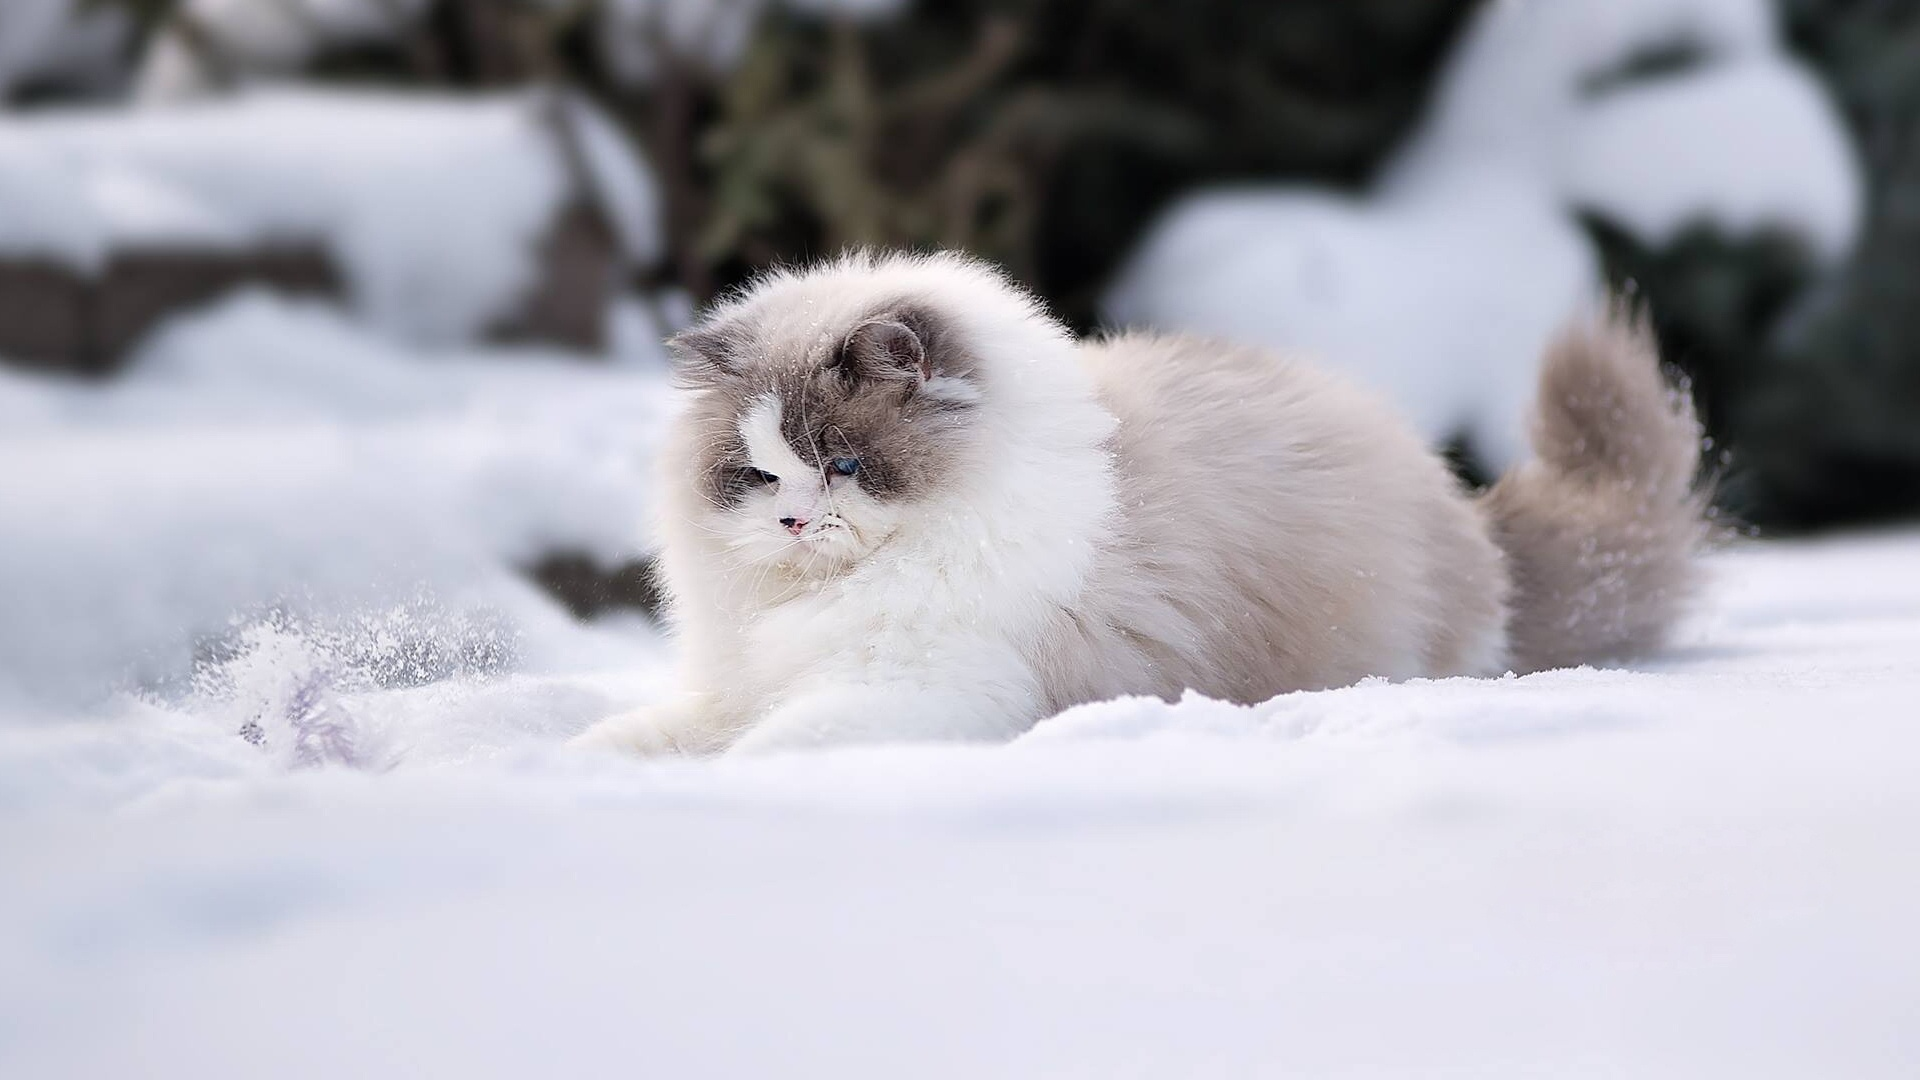 Download-Ragdoll-snow-winter-fluffy-cat-section-cats-in-resolution-1920x1080-wallpaper-wpc5804376